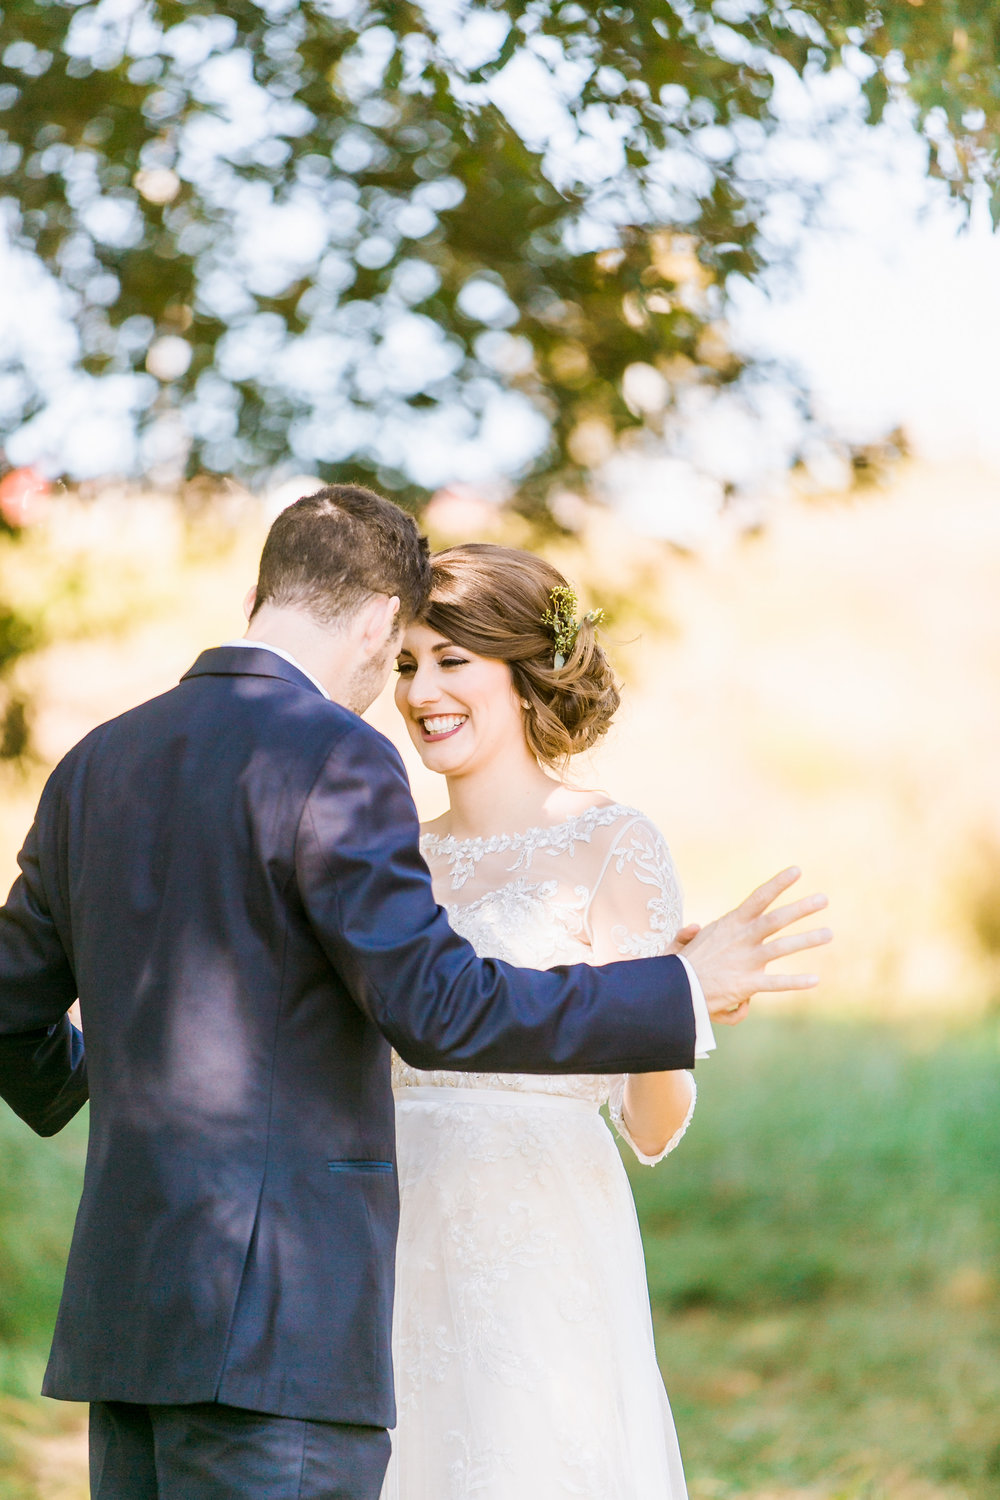 MissouriRusticWedding_StLouisWeddingPhotographer_AliciaDan_CatherineRhodesPhotography-1256-Edit.jpg